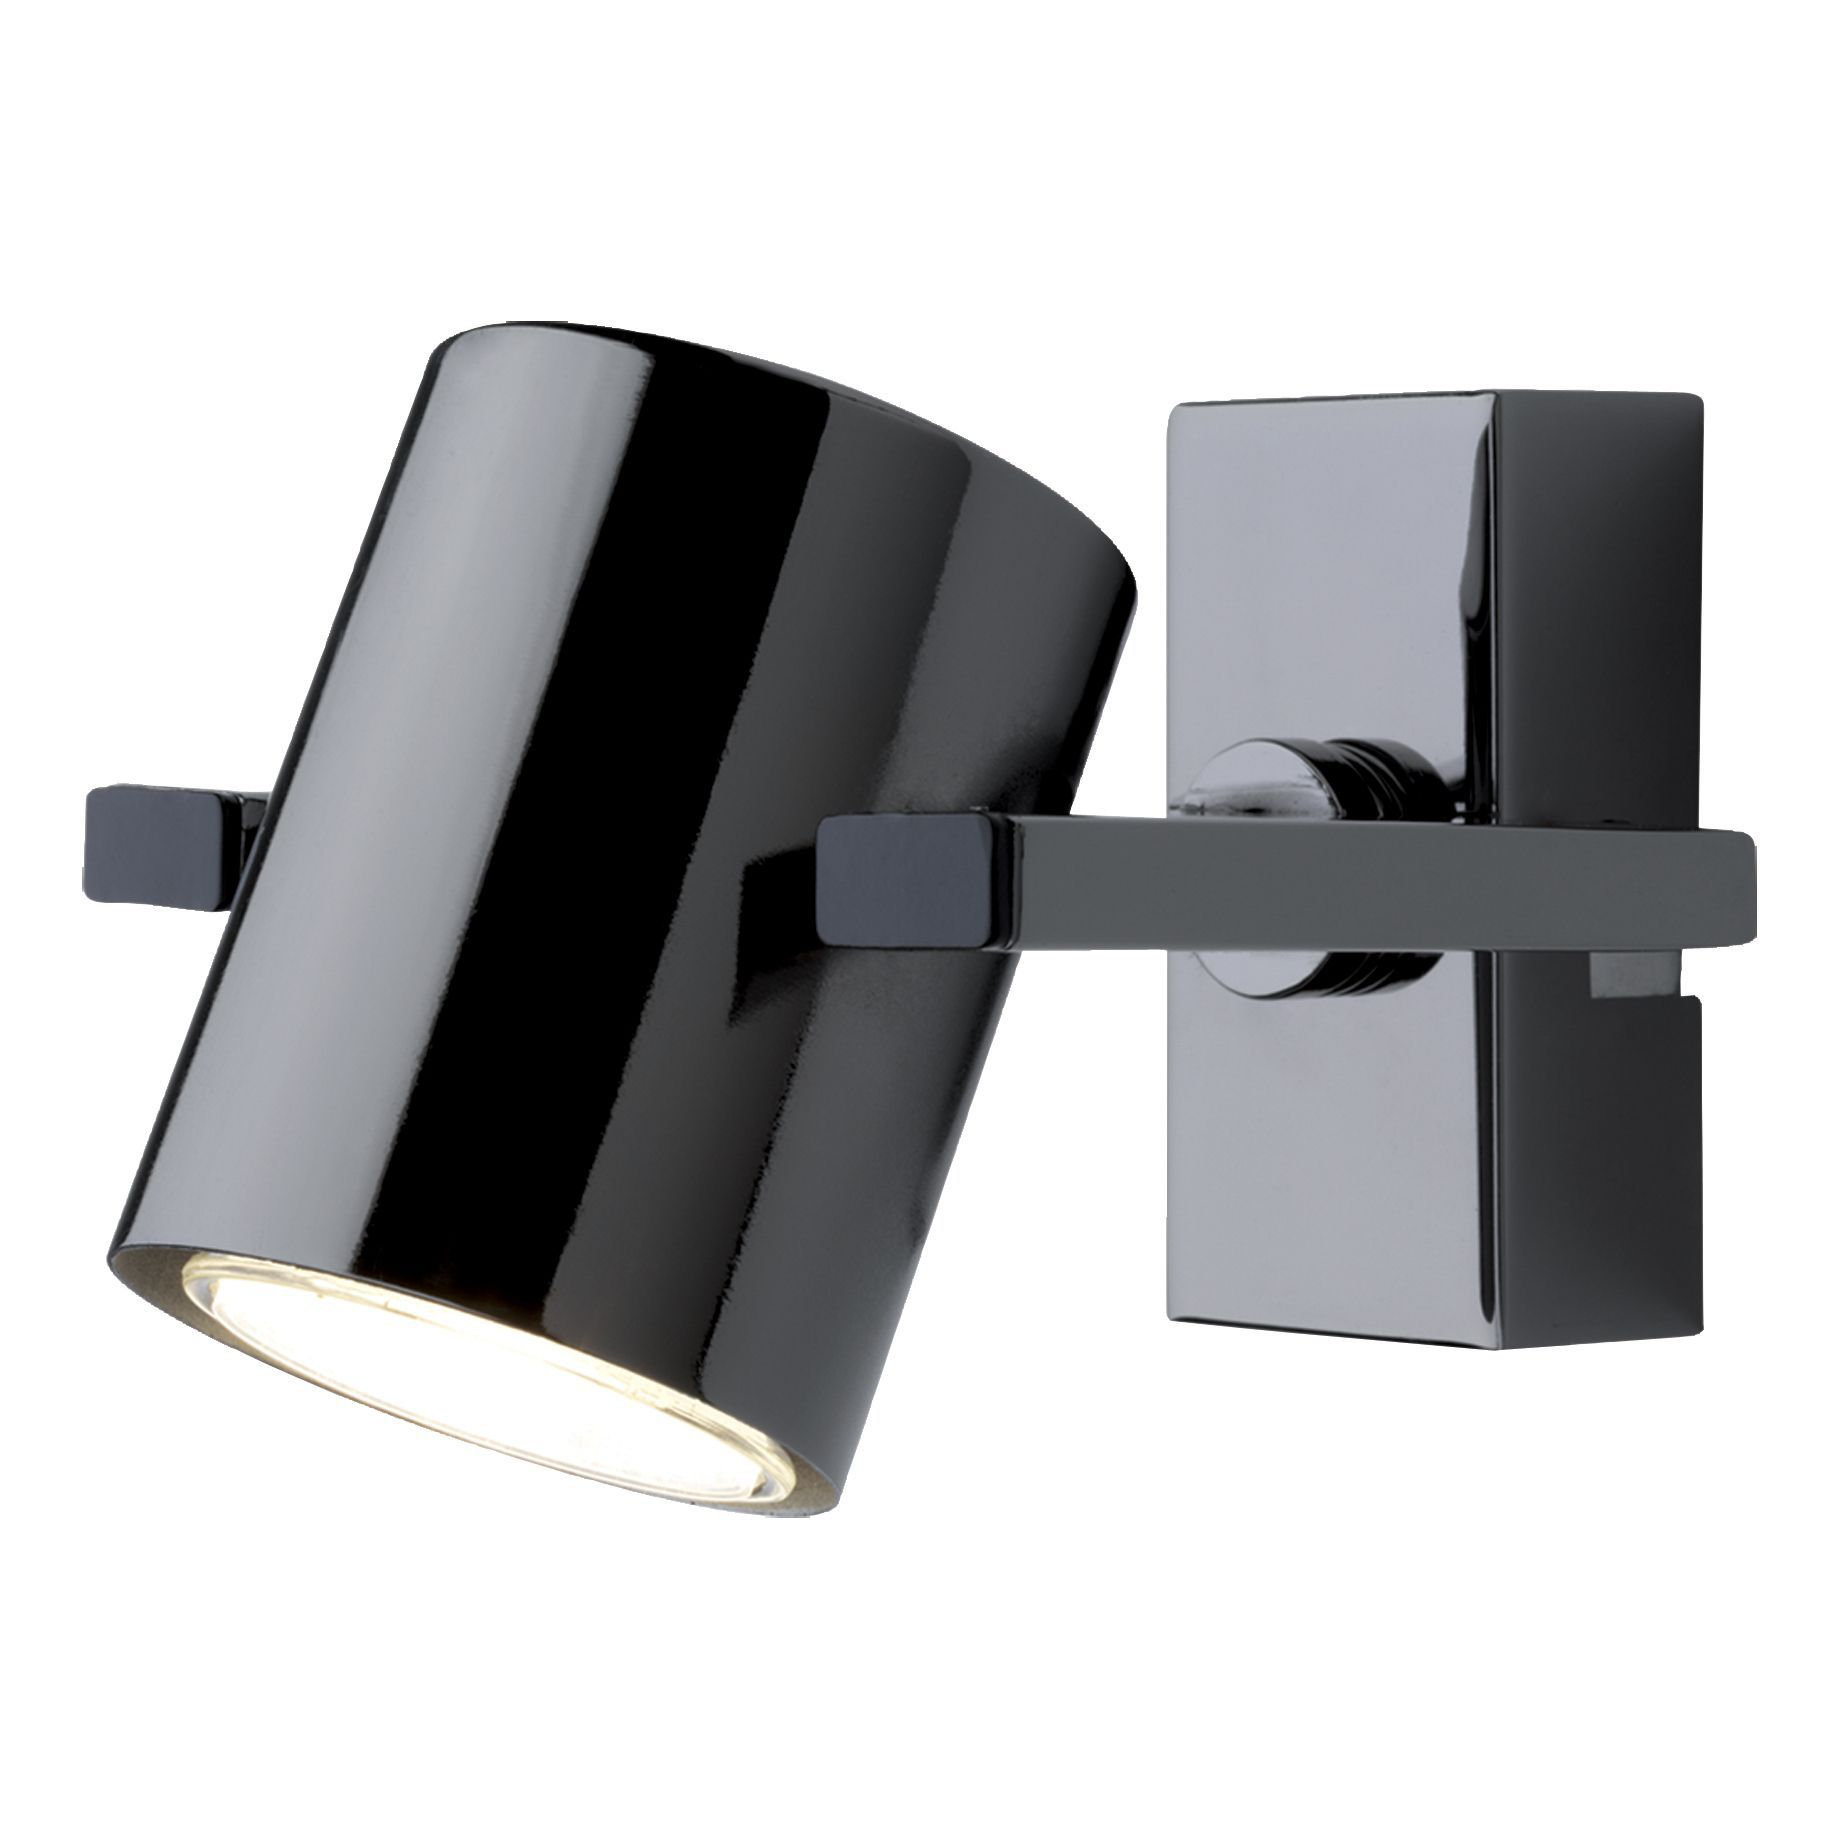 Theatre black nickel effect 4 lamp bar spotlight for B q bathroom lights